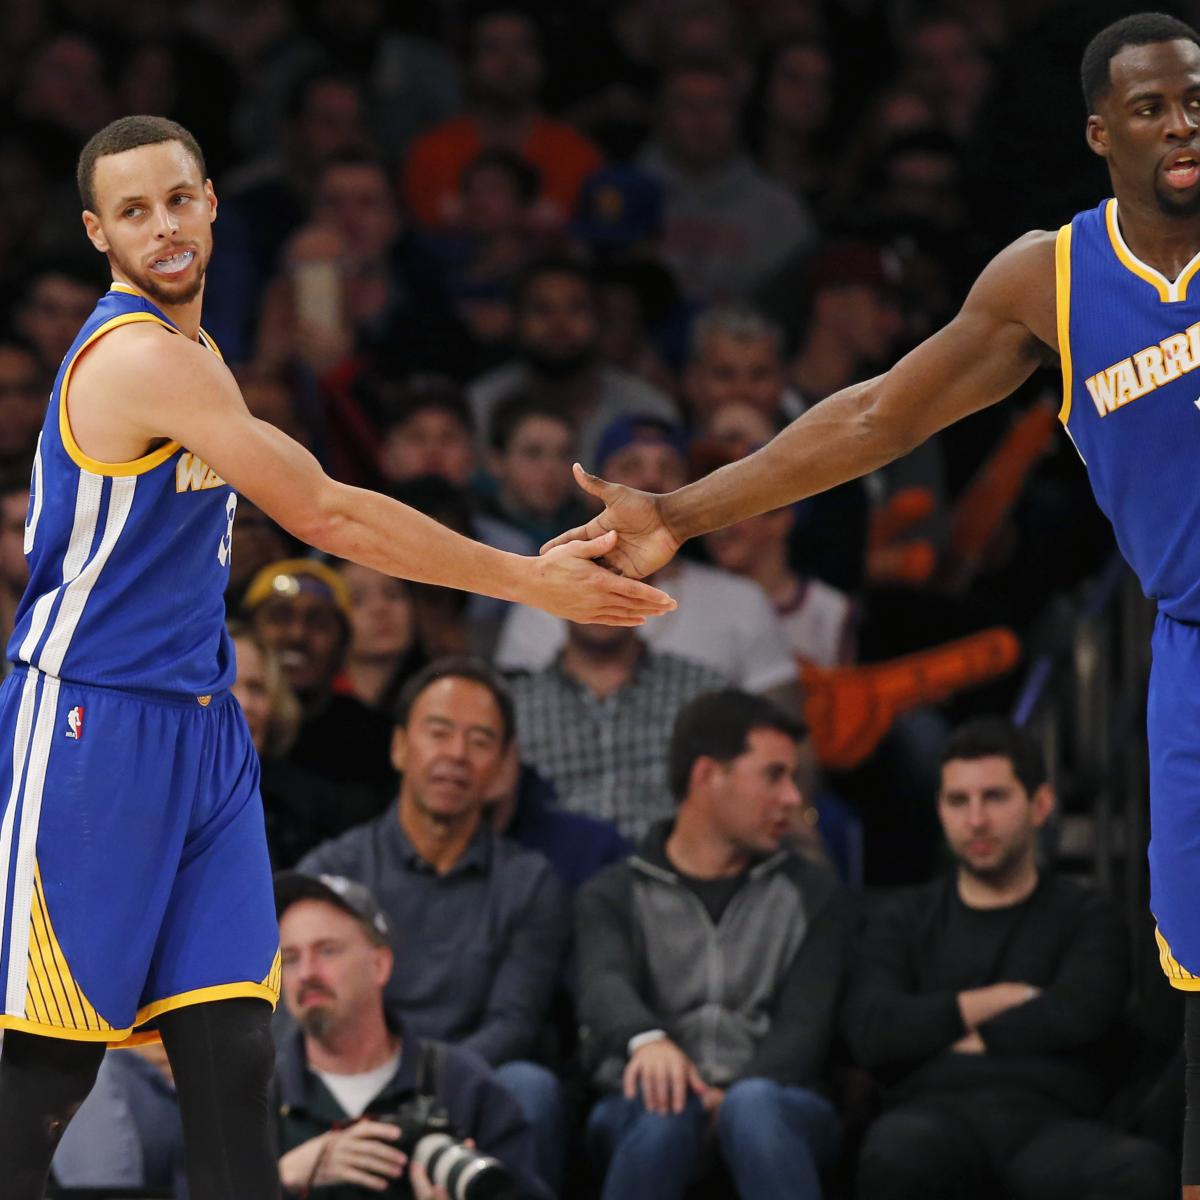 Draymond Green Discusses Drinking with Stephen Curry to Help Break out of Slumps